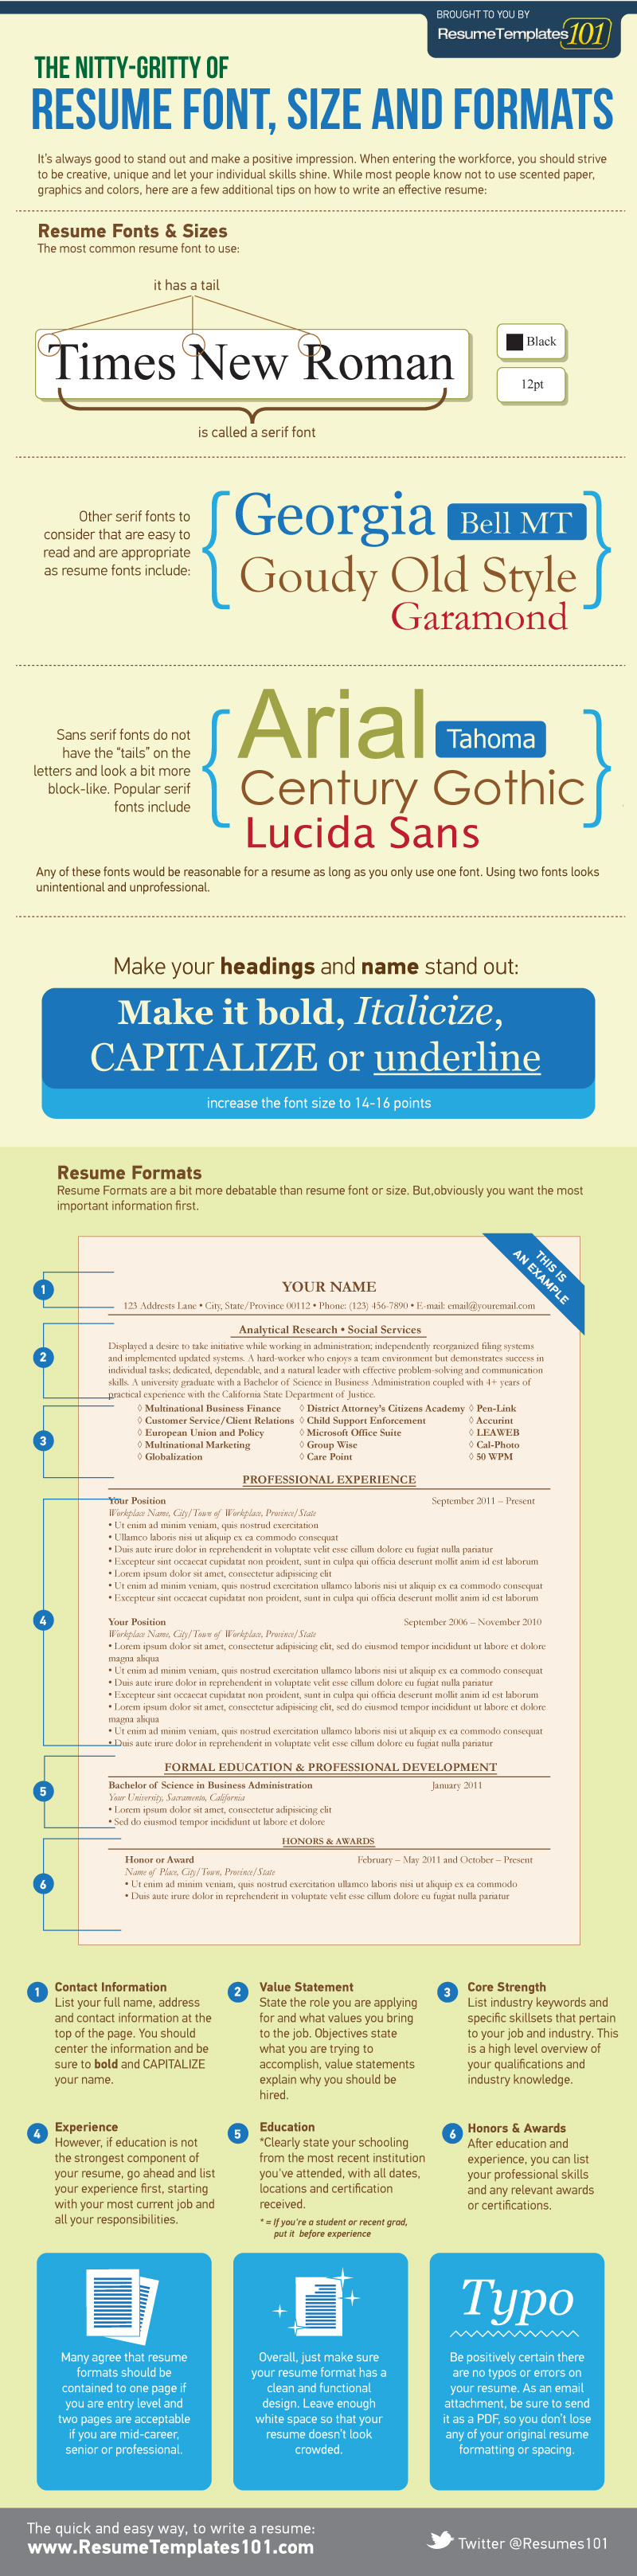 new best font and size for resume template resume resume font